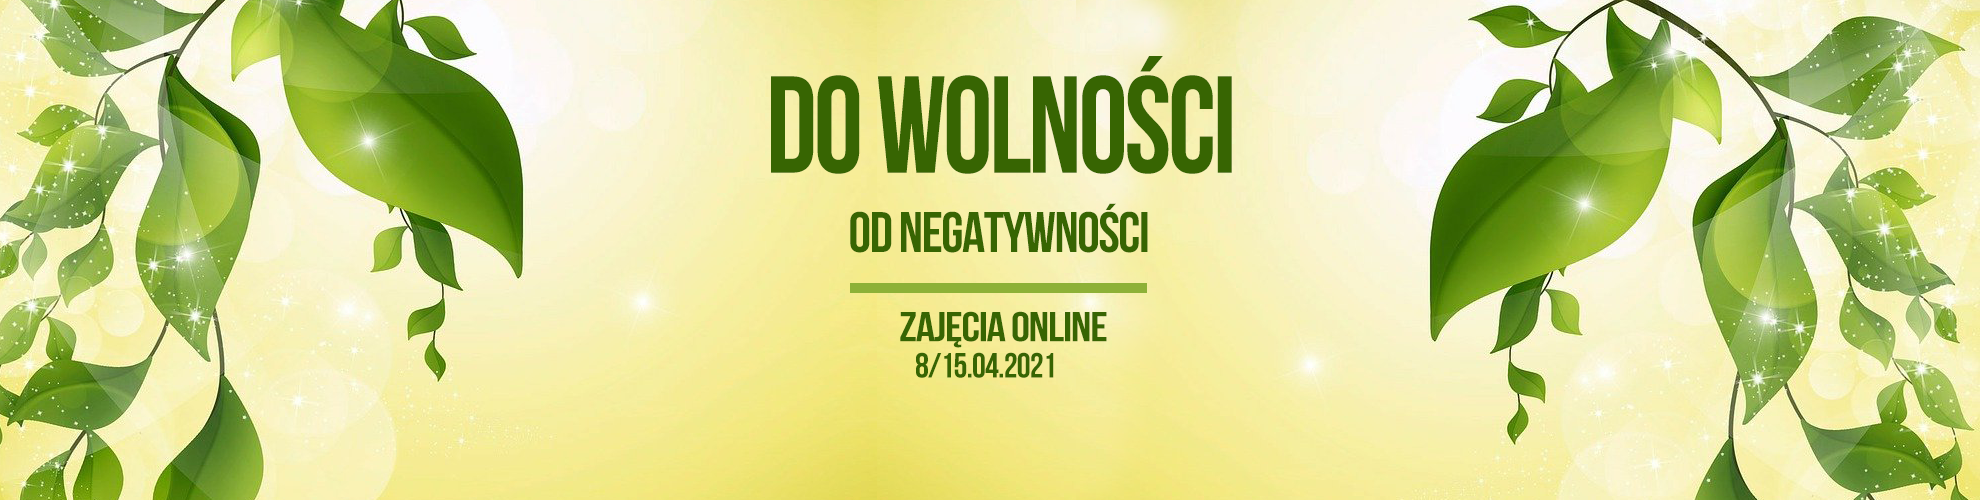 DO-WOLNOSCI